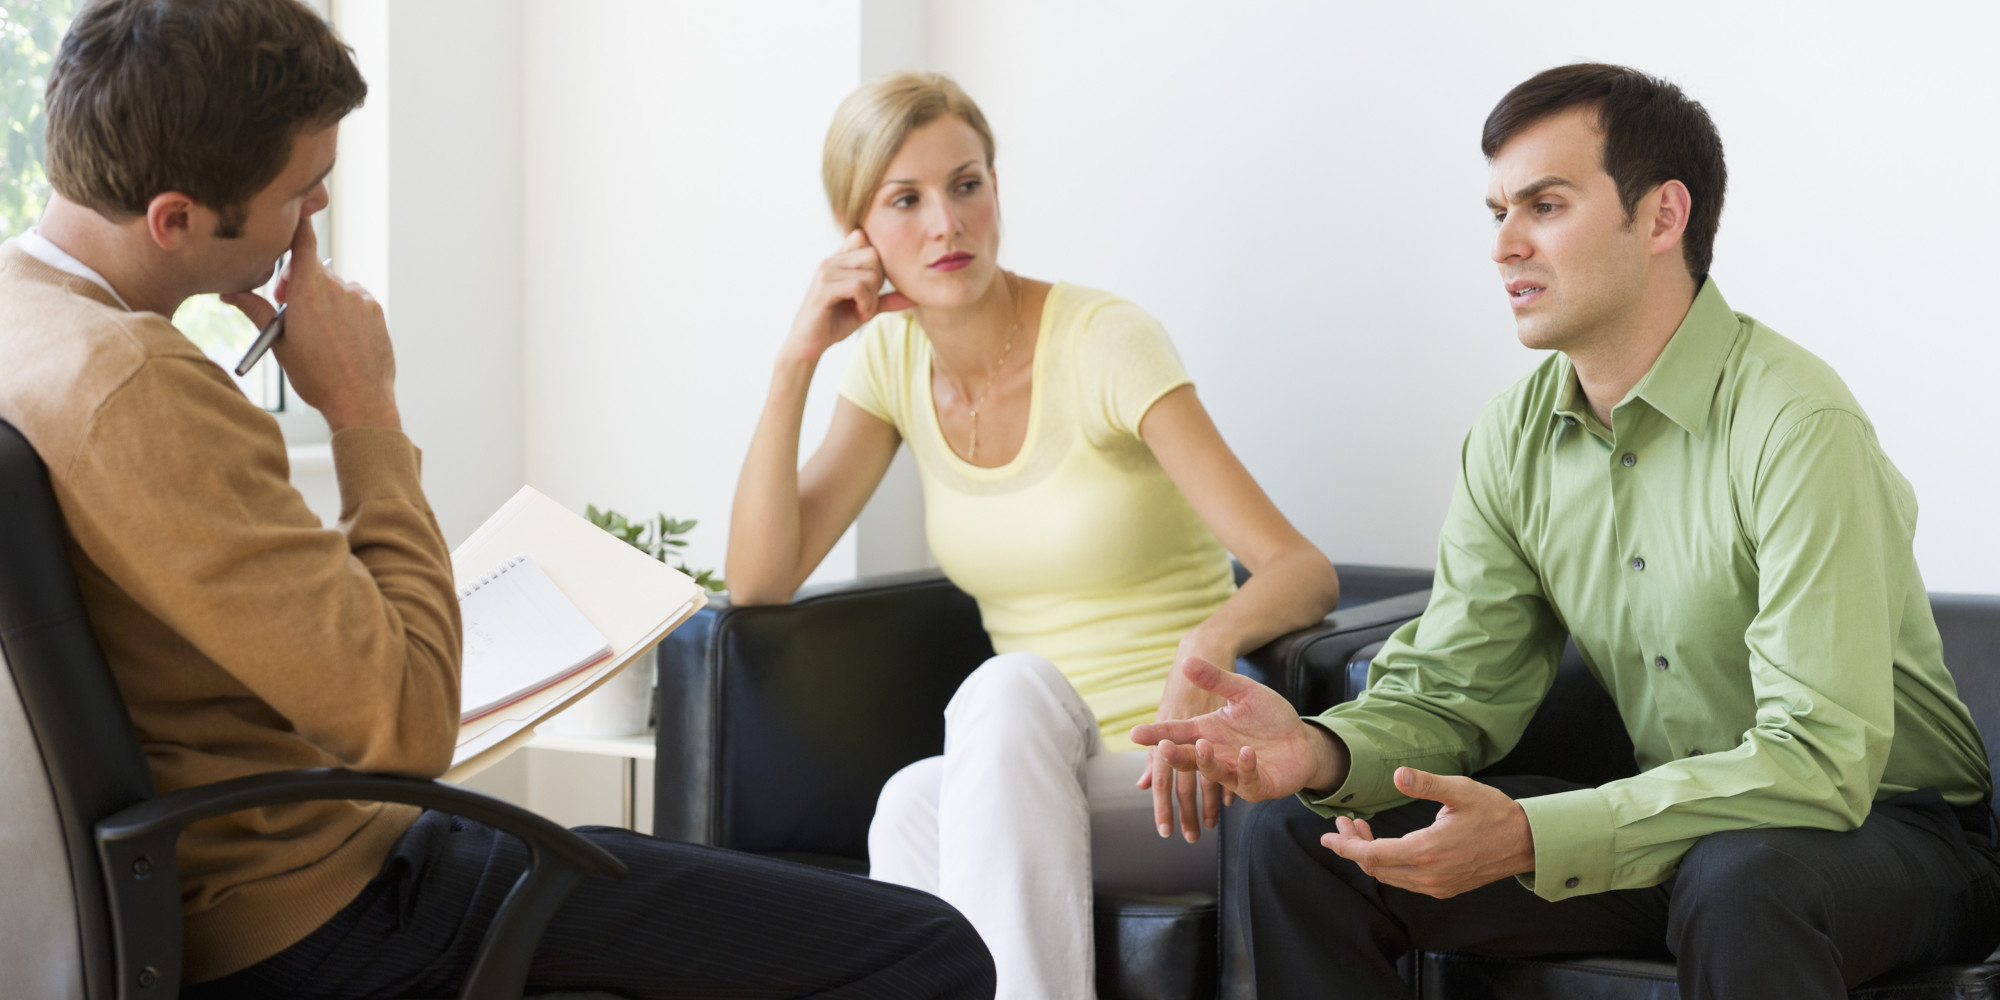 divorce counseling skills in person centered therapy